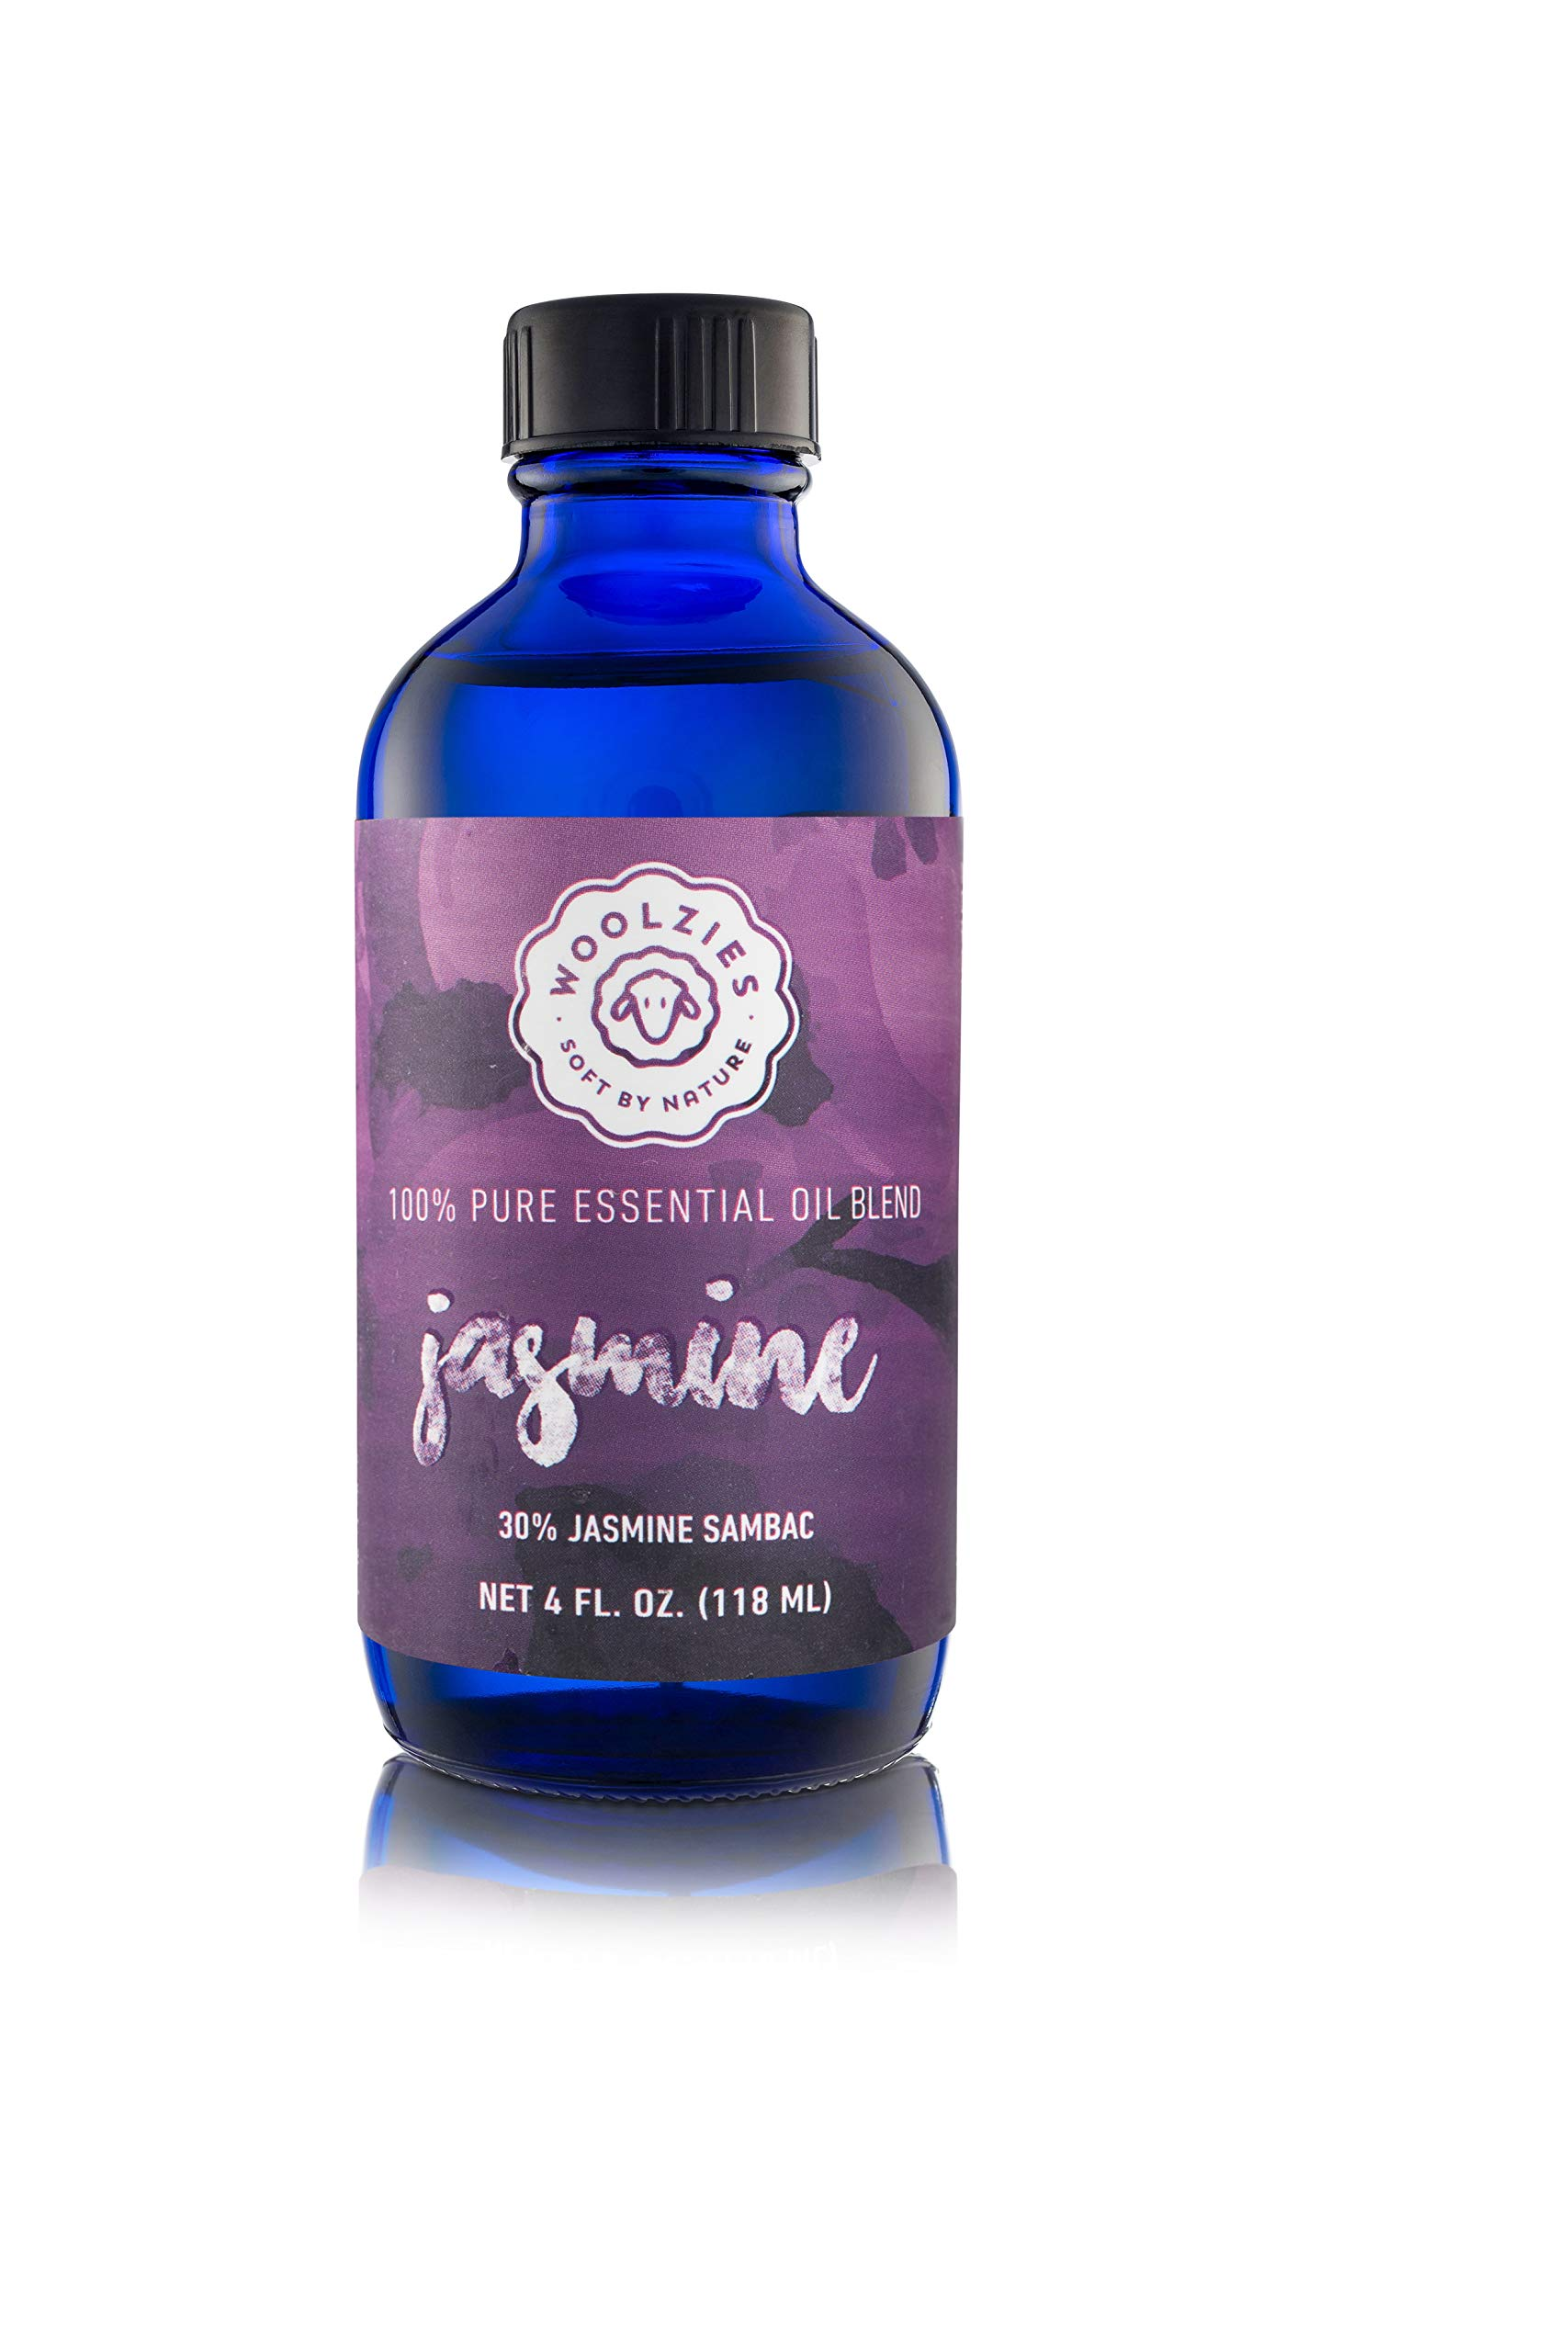 Woolzies 100% Pure Jasmine Essential Oil Blend 4oz  Cold-Pressed   Helps Be Positive Happy Relaxed Confident & Boost Mood  Enhances Sleep  Natural Therapeutic Grade   for Diffusion/Internal/Topical by Woolzies